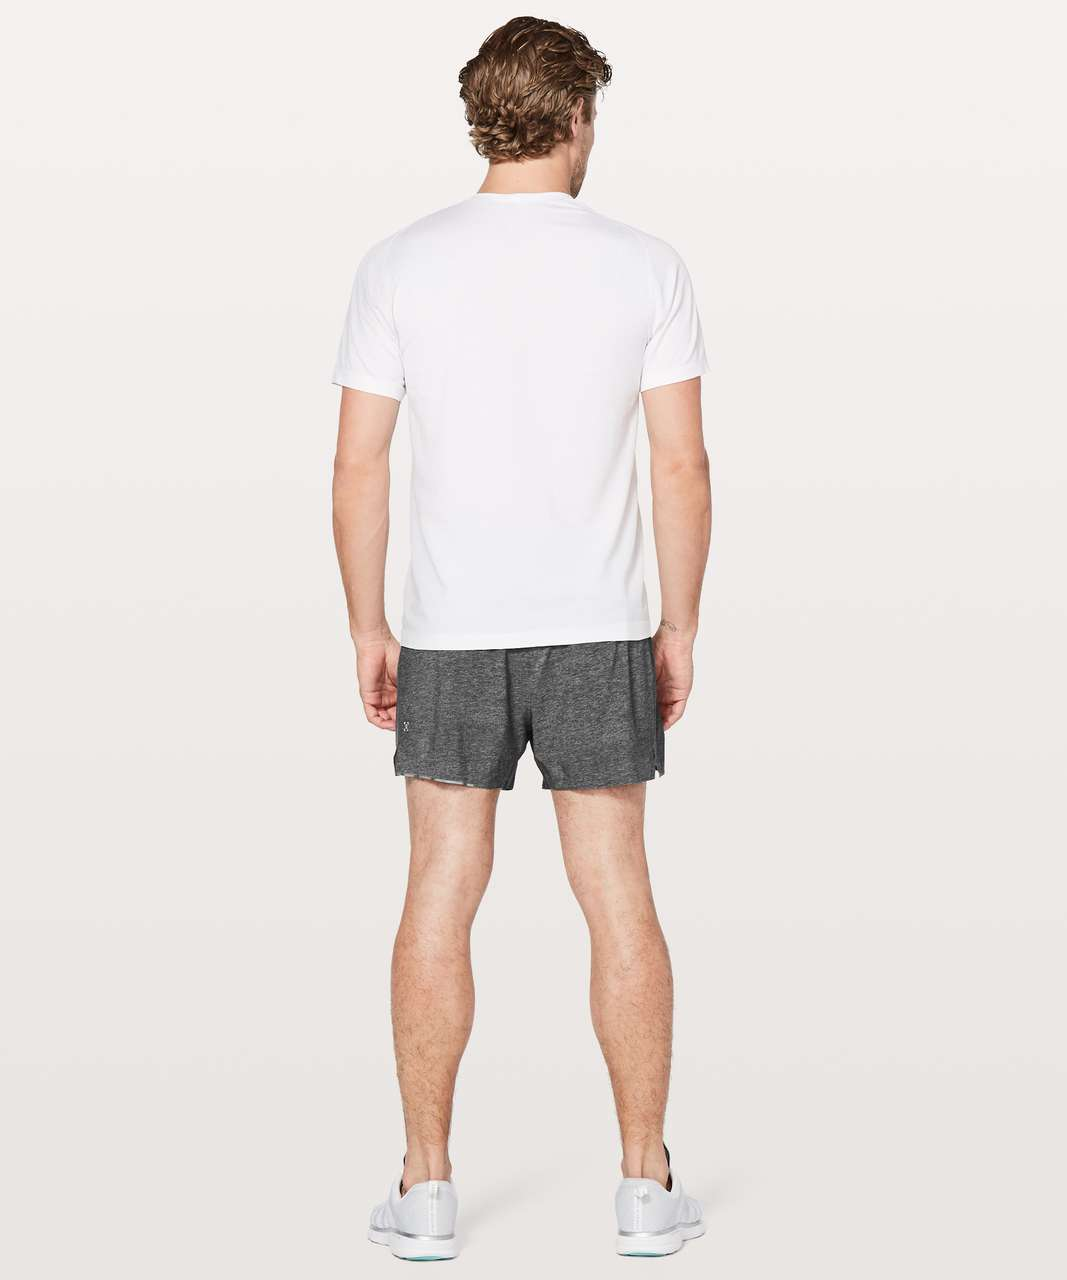 "Lululemon Surge Short Out Of Mind Liner 4"" - Heathered Texture Printed Greyt Deep Coal"